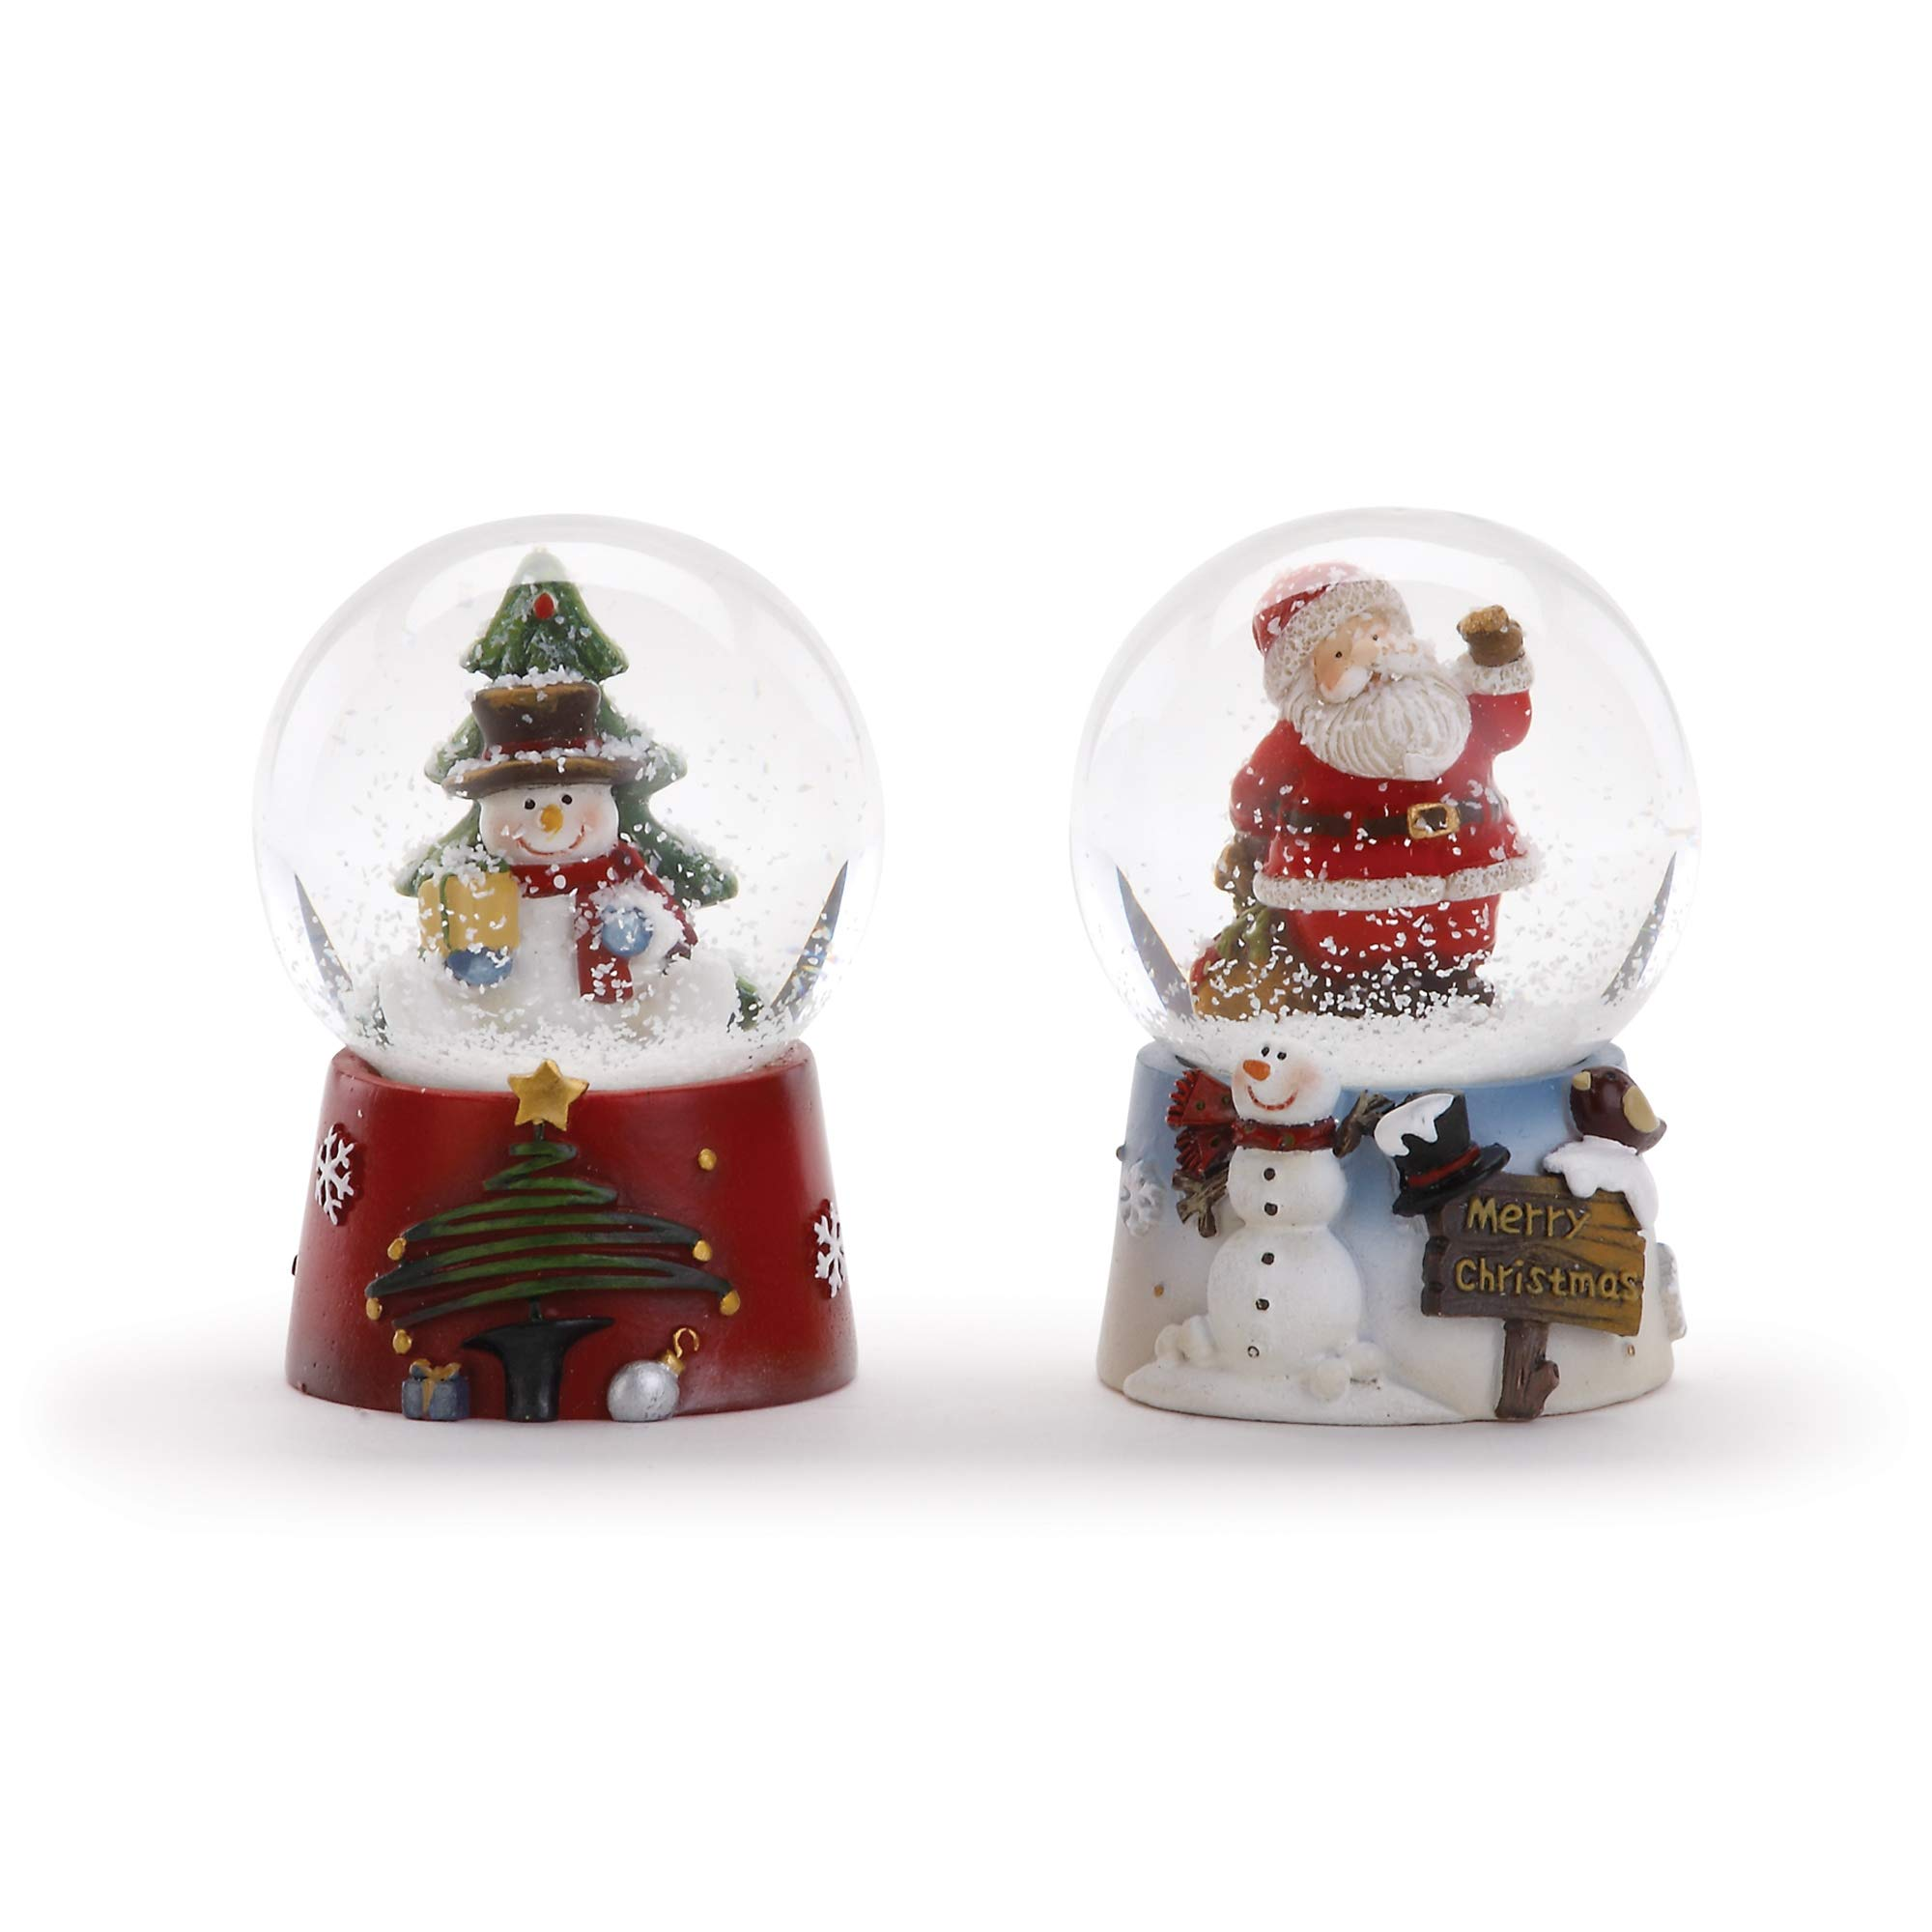 Napco Imports Snowman and Santa Claus 2 Inch Mini Glass Christmas Water Globes Assorted Set of 2